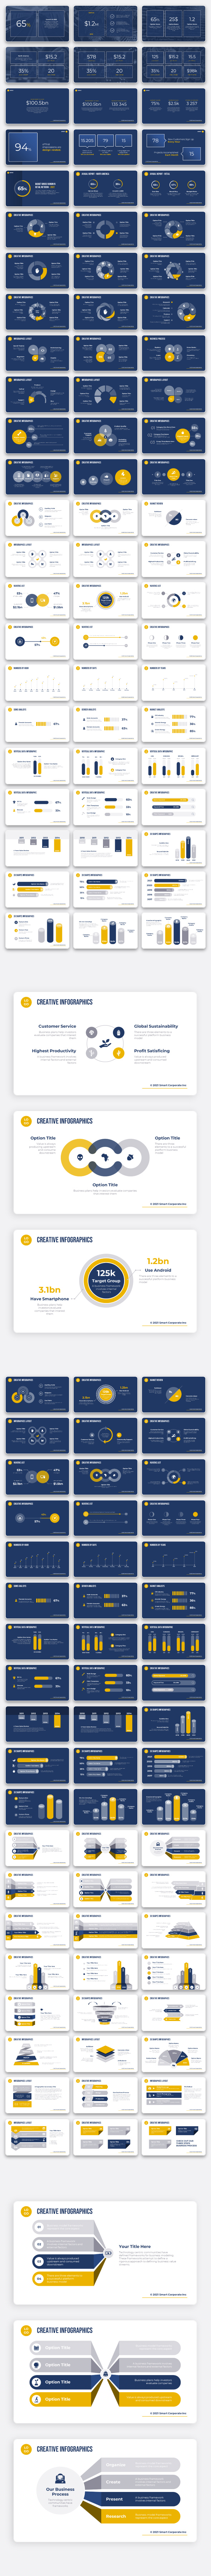 Corporate - Premium PowerPoint Template for Business - 7